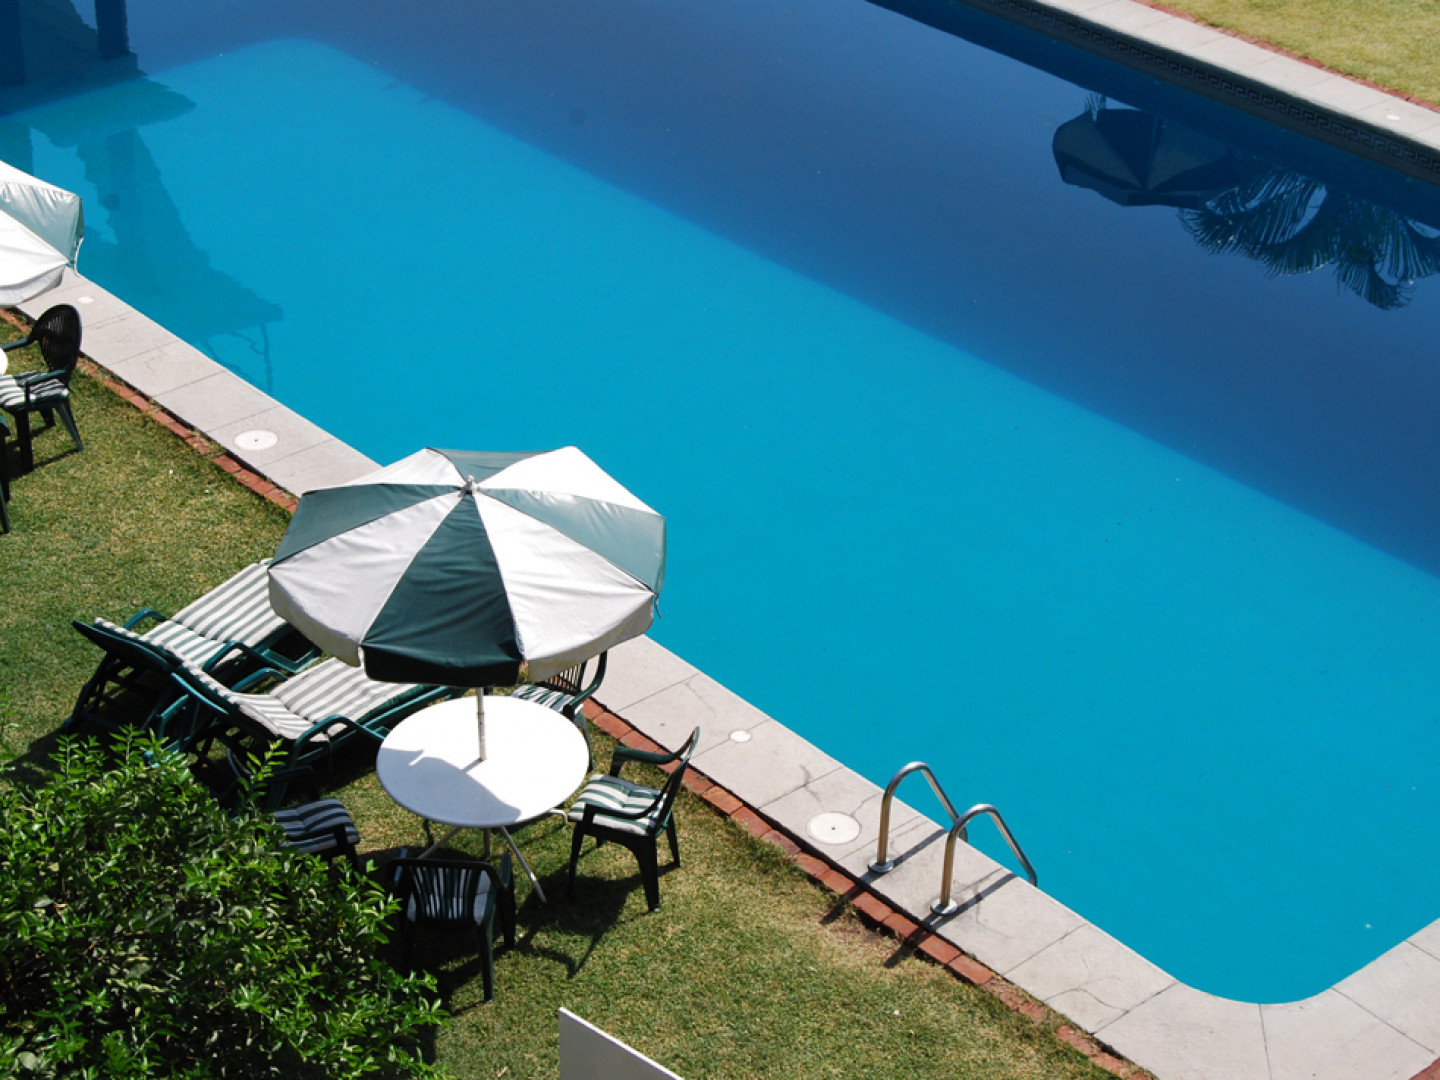 Enhance the Quality of Your Pool